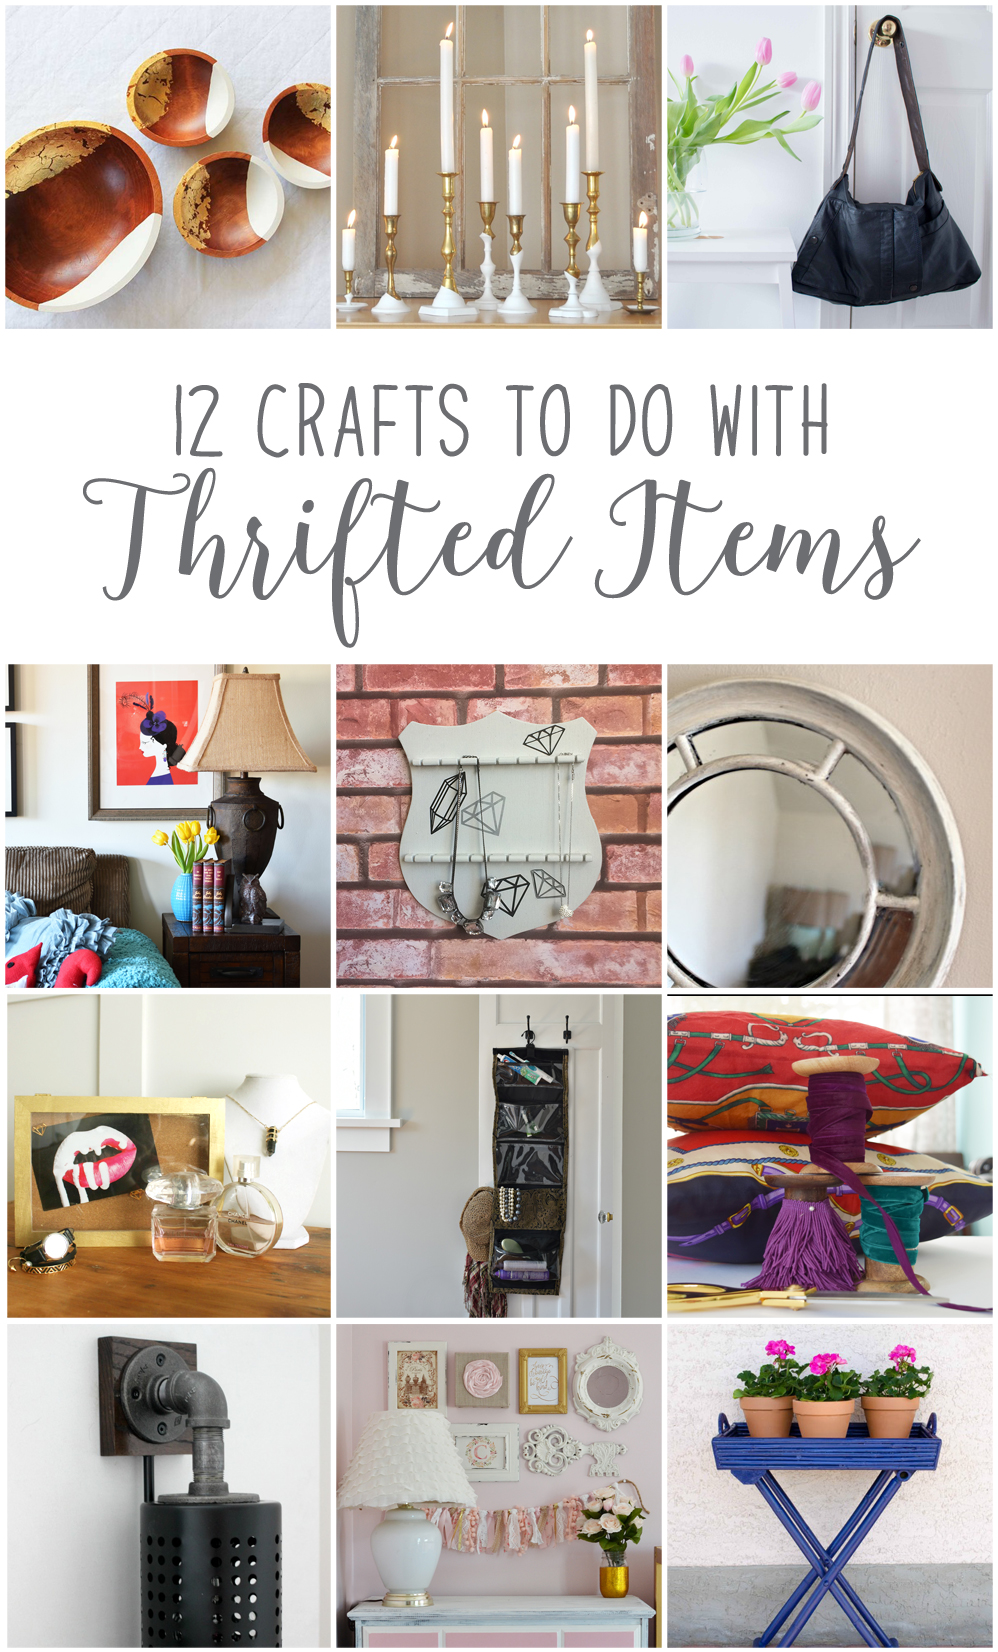 Twelve creative and innovative DIY projects made with thrift store finds. From serving bowls, candlesticks, lamps, mirrors and more, these projects will leave you inspired to head to your nearest Value Village! Includes a step-by-step tutorial for a DIY handbag upcycled from an old leather coat!